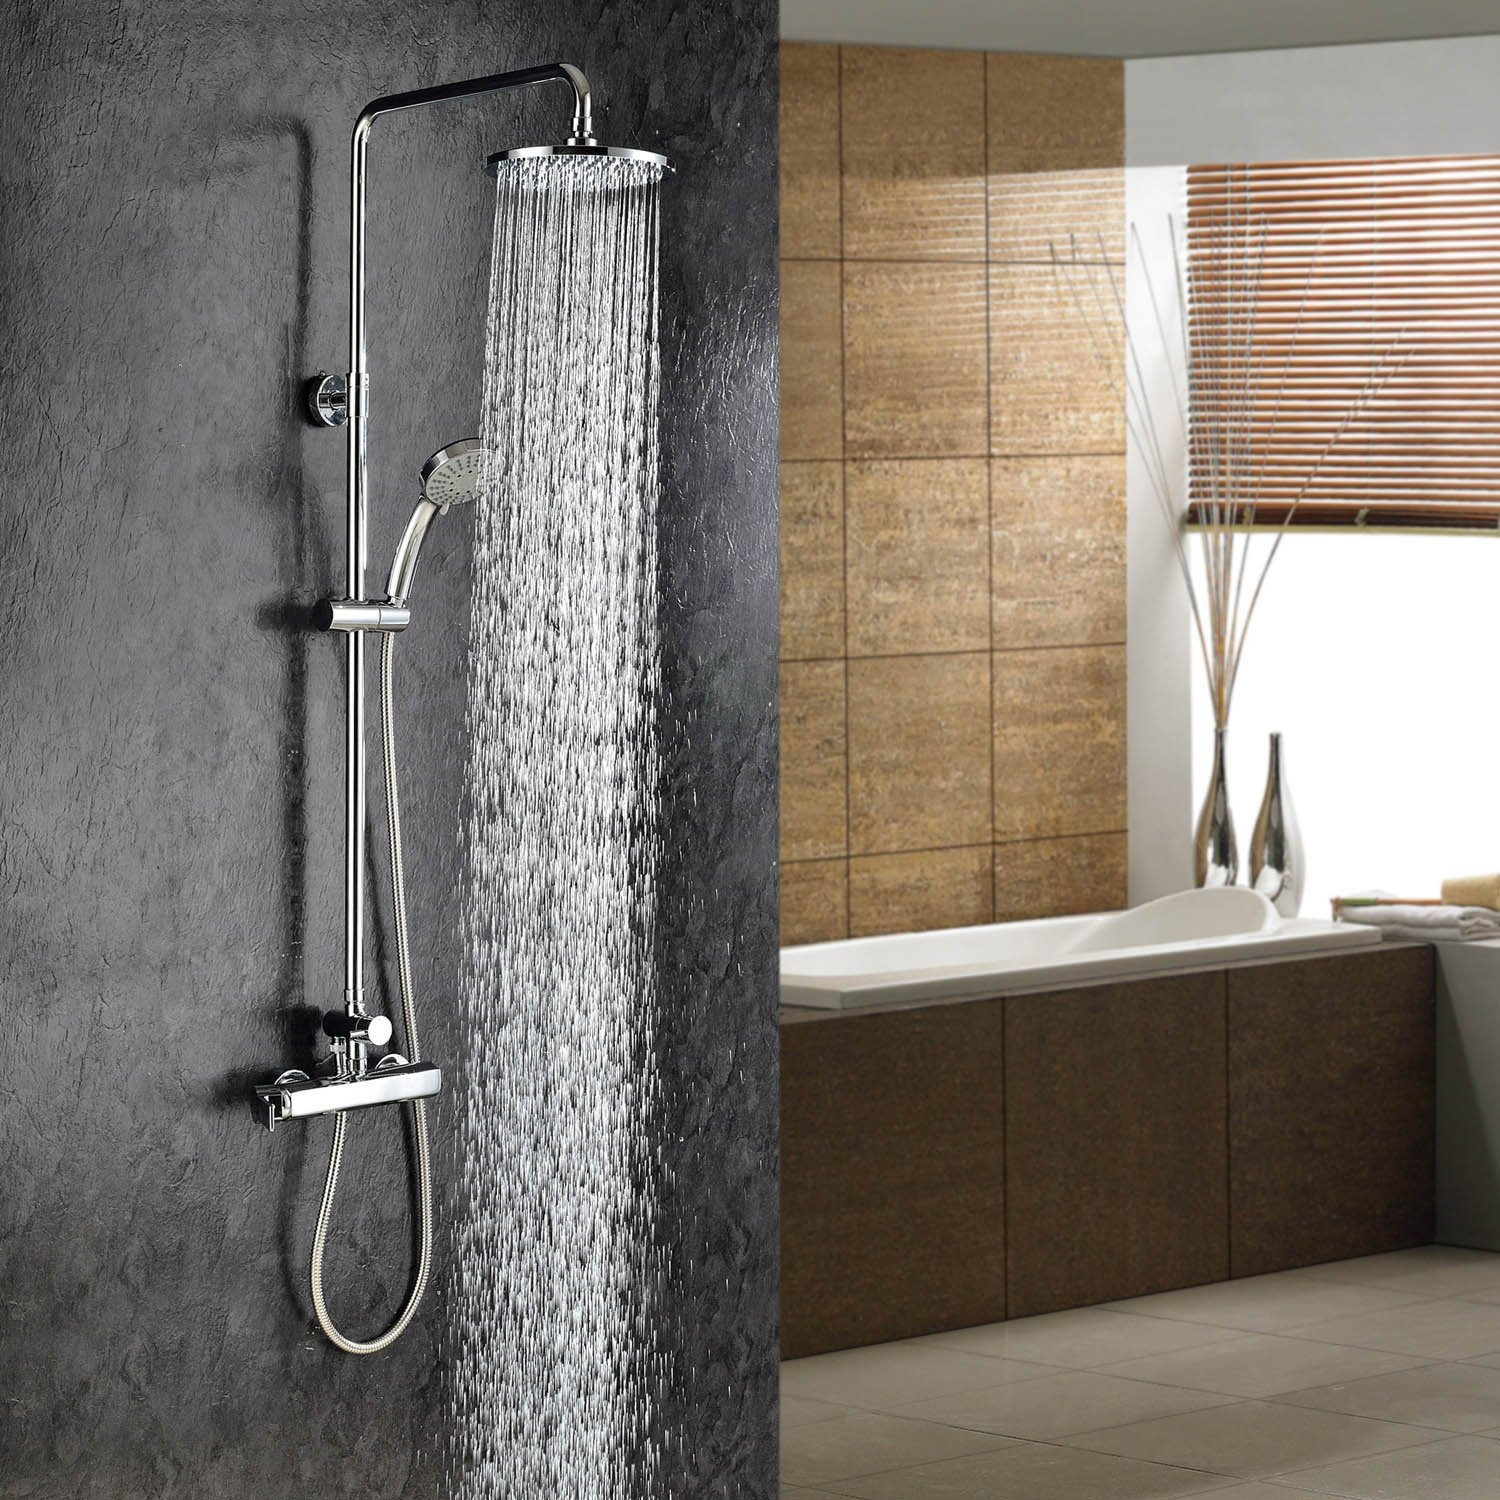 Wall Mount Contemporary Chrome Finish Rainfall Shower Faucet